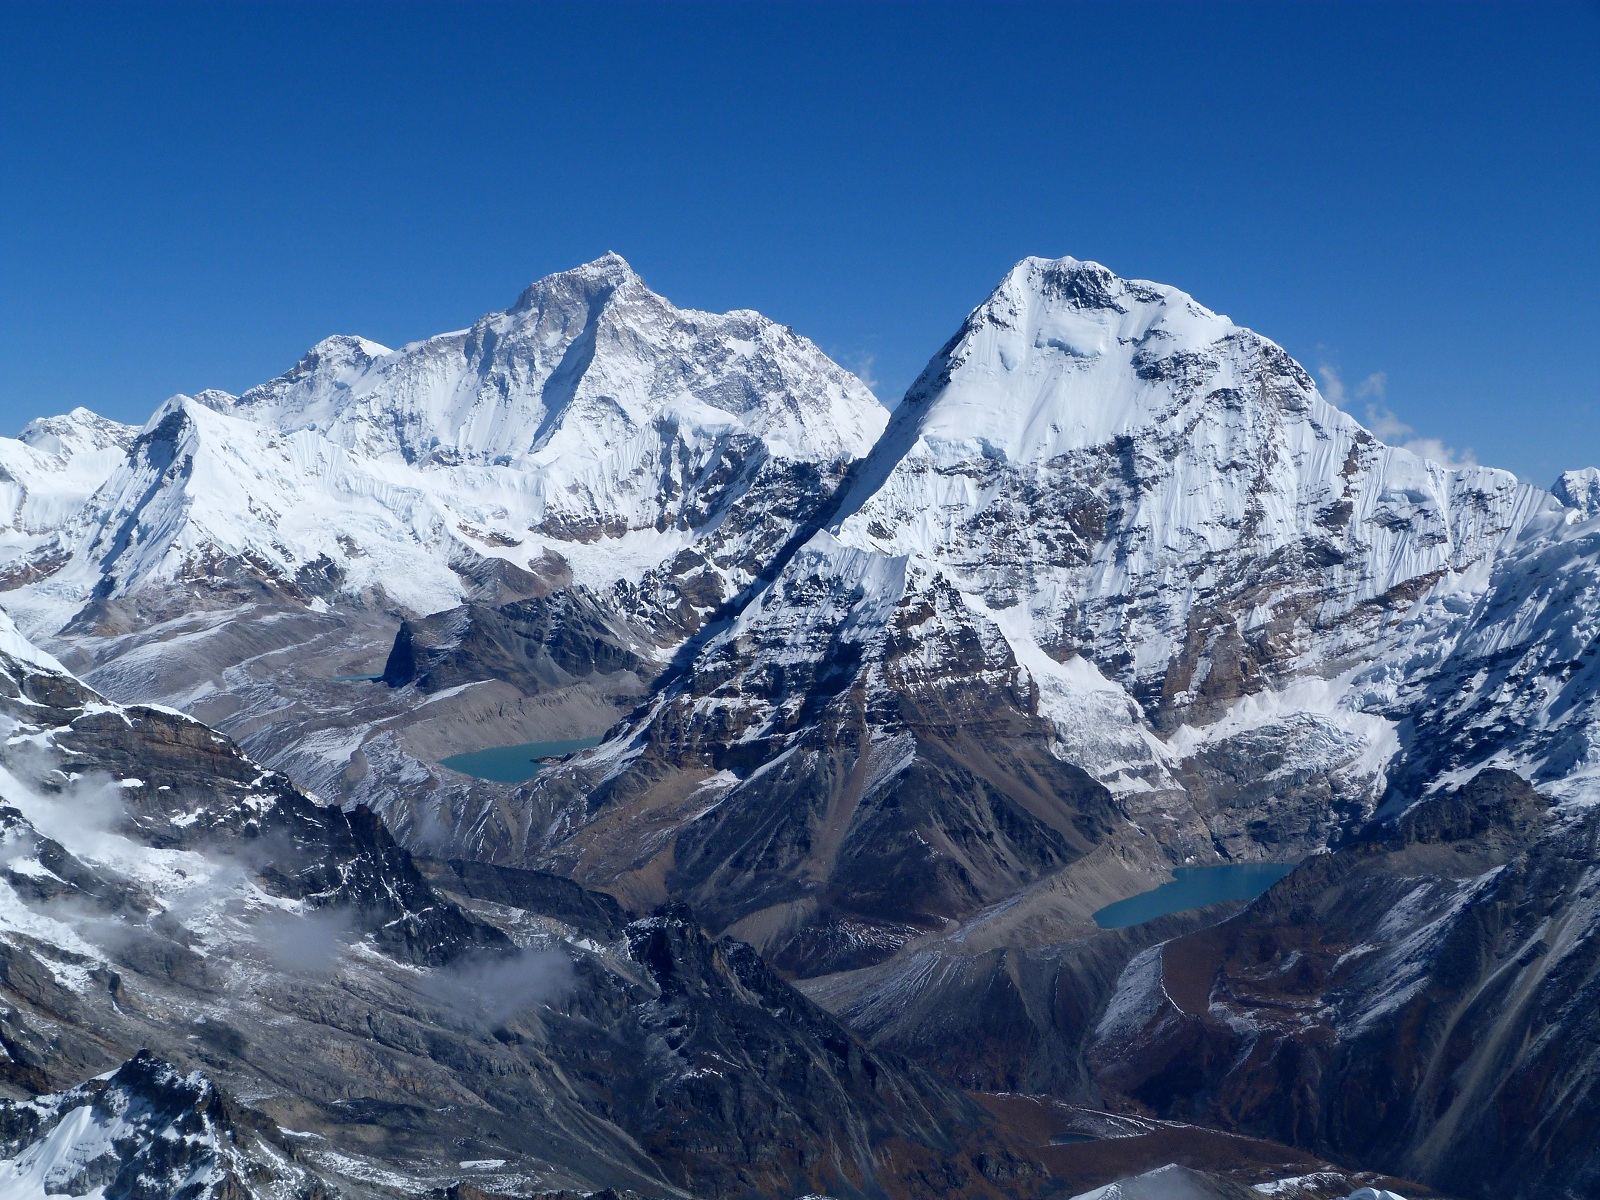 Tallest Mountains, Makalu and Chamlang, Everest, Panorama peak view